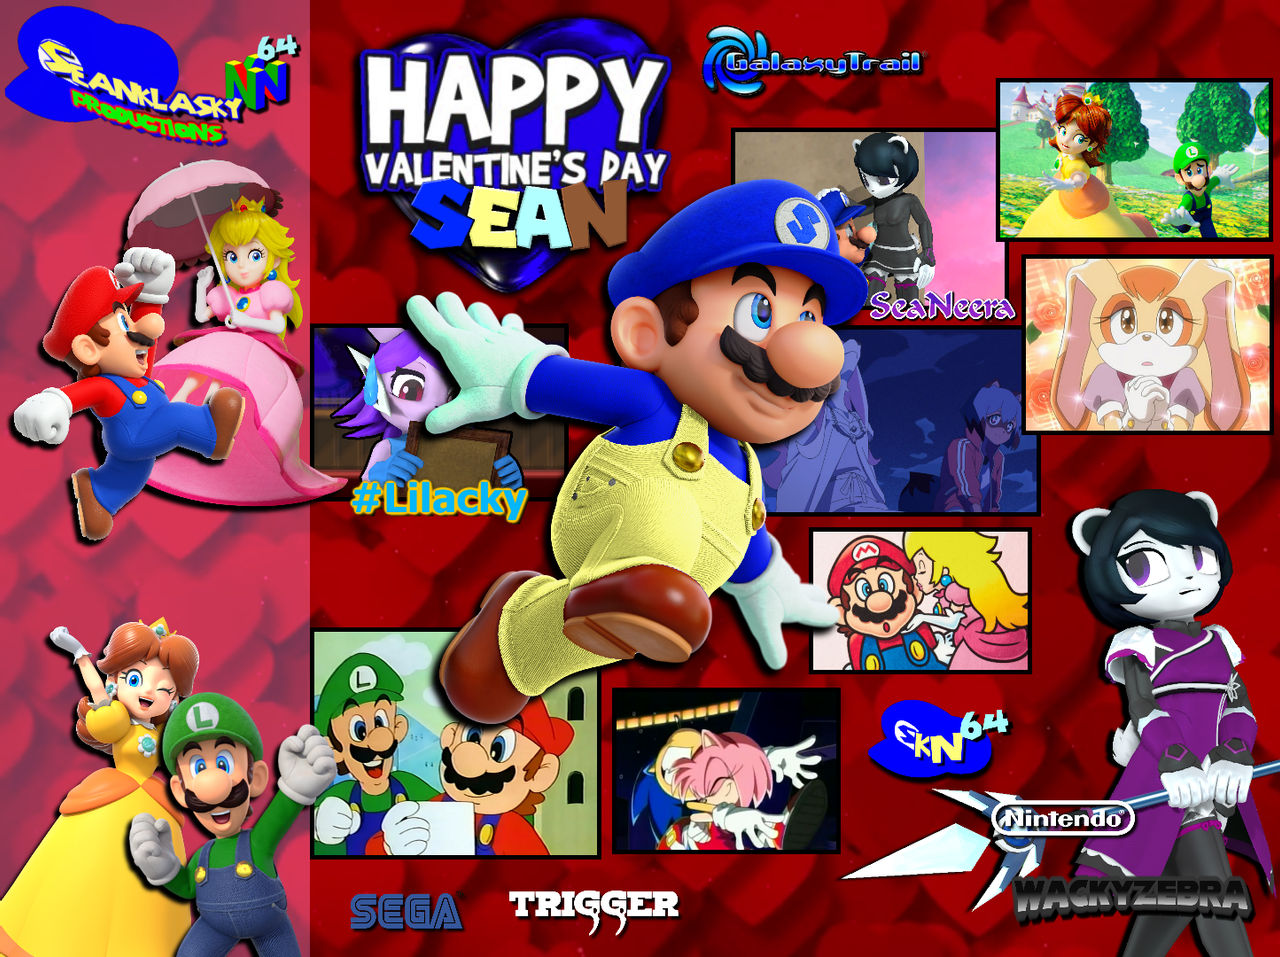 Seans Valentines Day 2021 Wallpaper by SeanKlaskyN64 on 1280x957